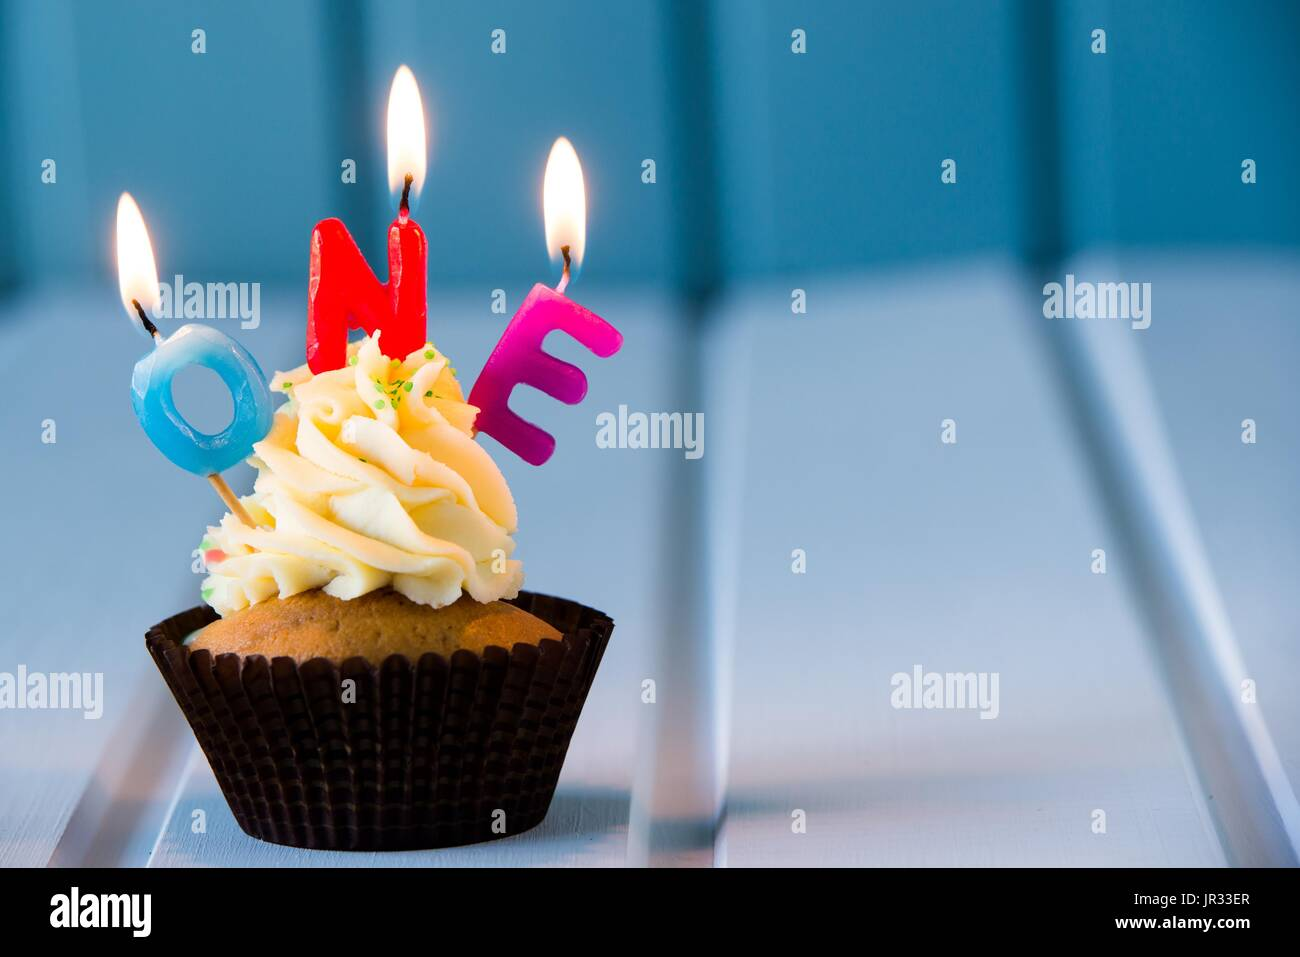 Incredible Birthdays Cake Cupcake With A Candles For 1 First Birthday Funny Birthday Cards Online Barepcheapnameinfo